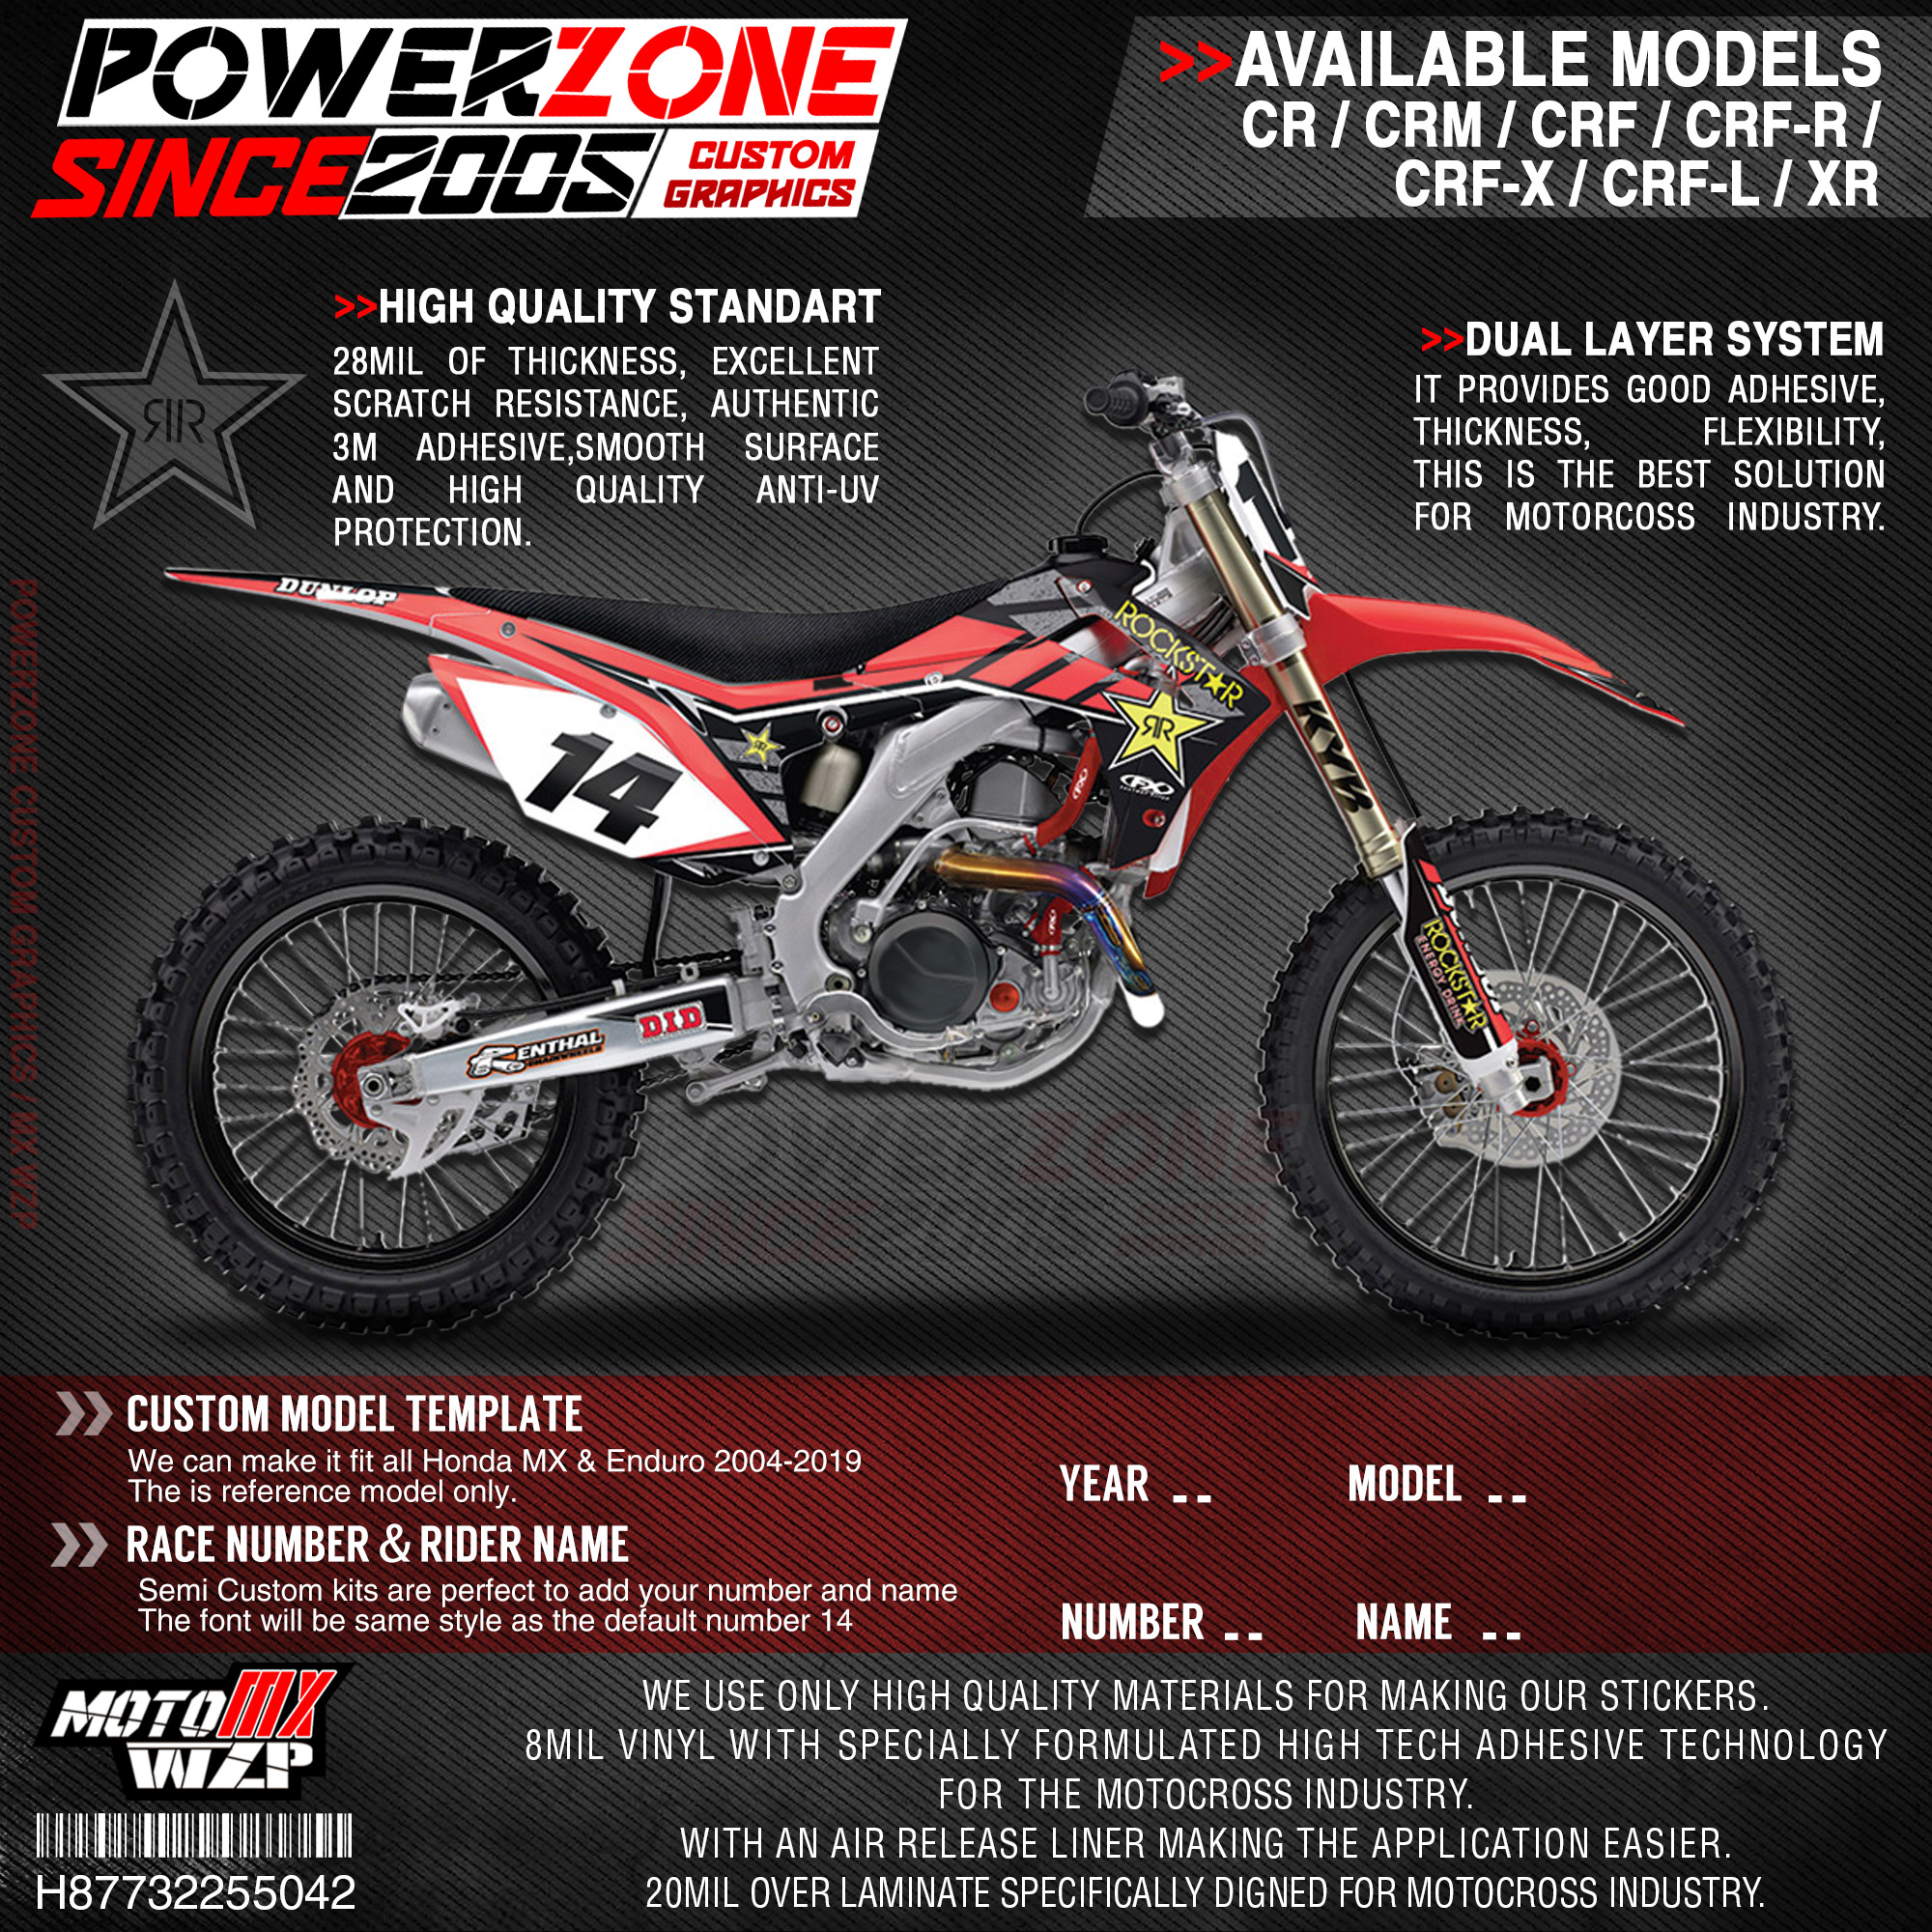 PowerZone Custom Team Graphics Backgrounds Decals 3M Stickers Kit For HONDA CRF250R 2010-2013 CRF450R 2009-2012 041